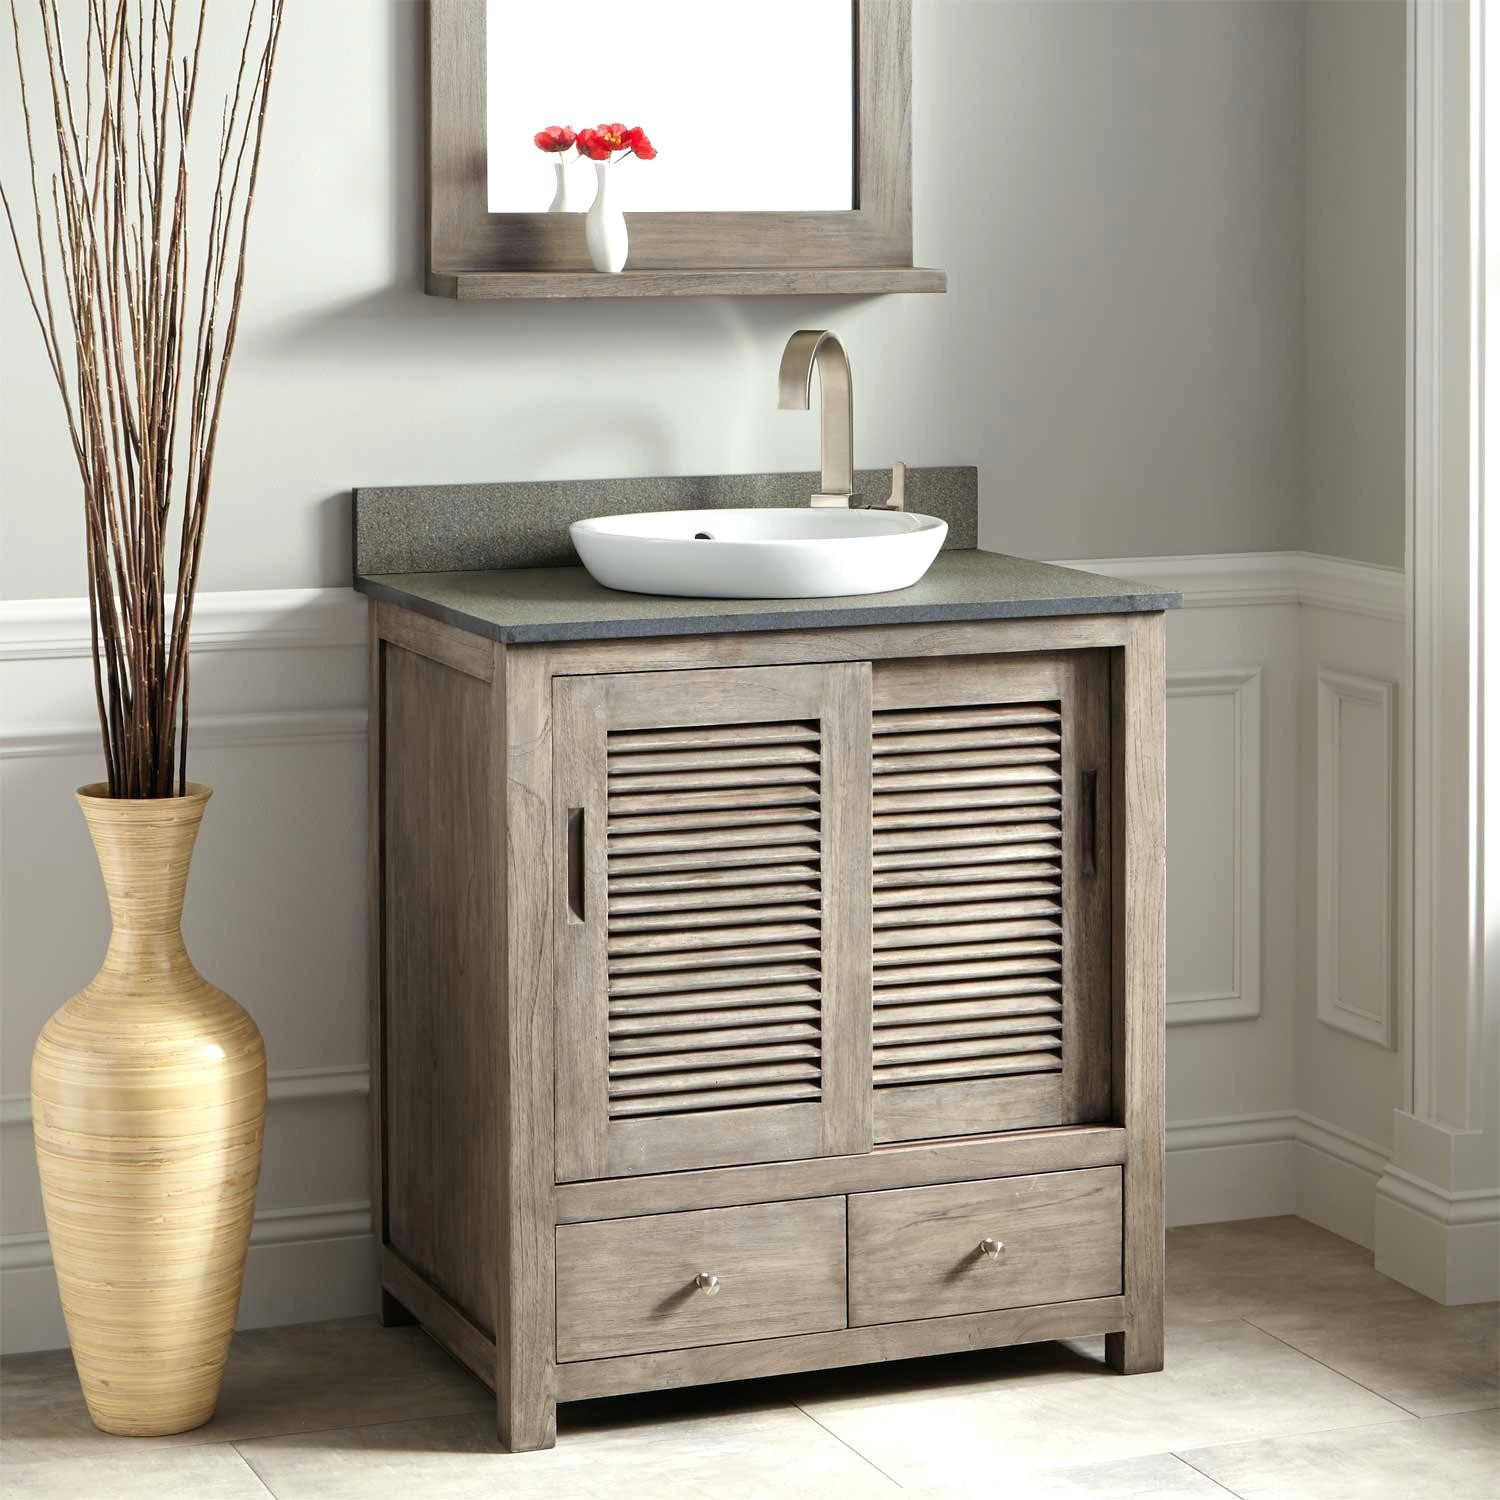 Overstock Bathroom Vanity Beautiful Overstock Bathroom Vanities Single Vanity wholesale Narrow Collection